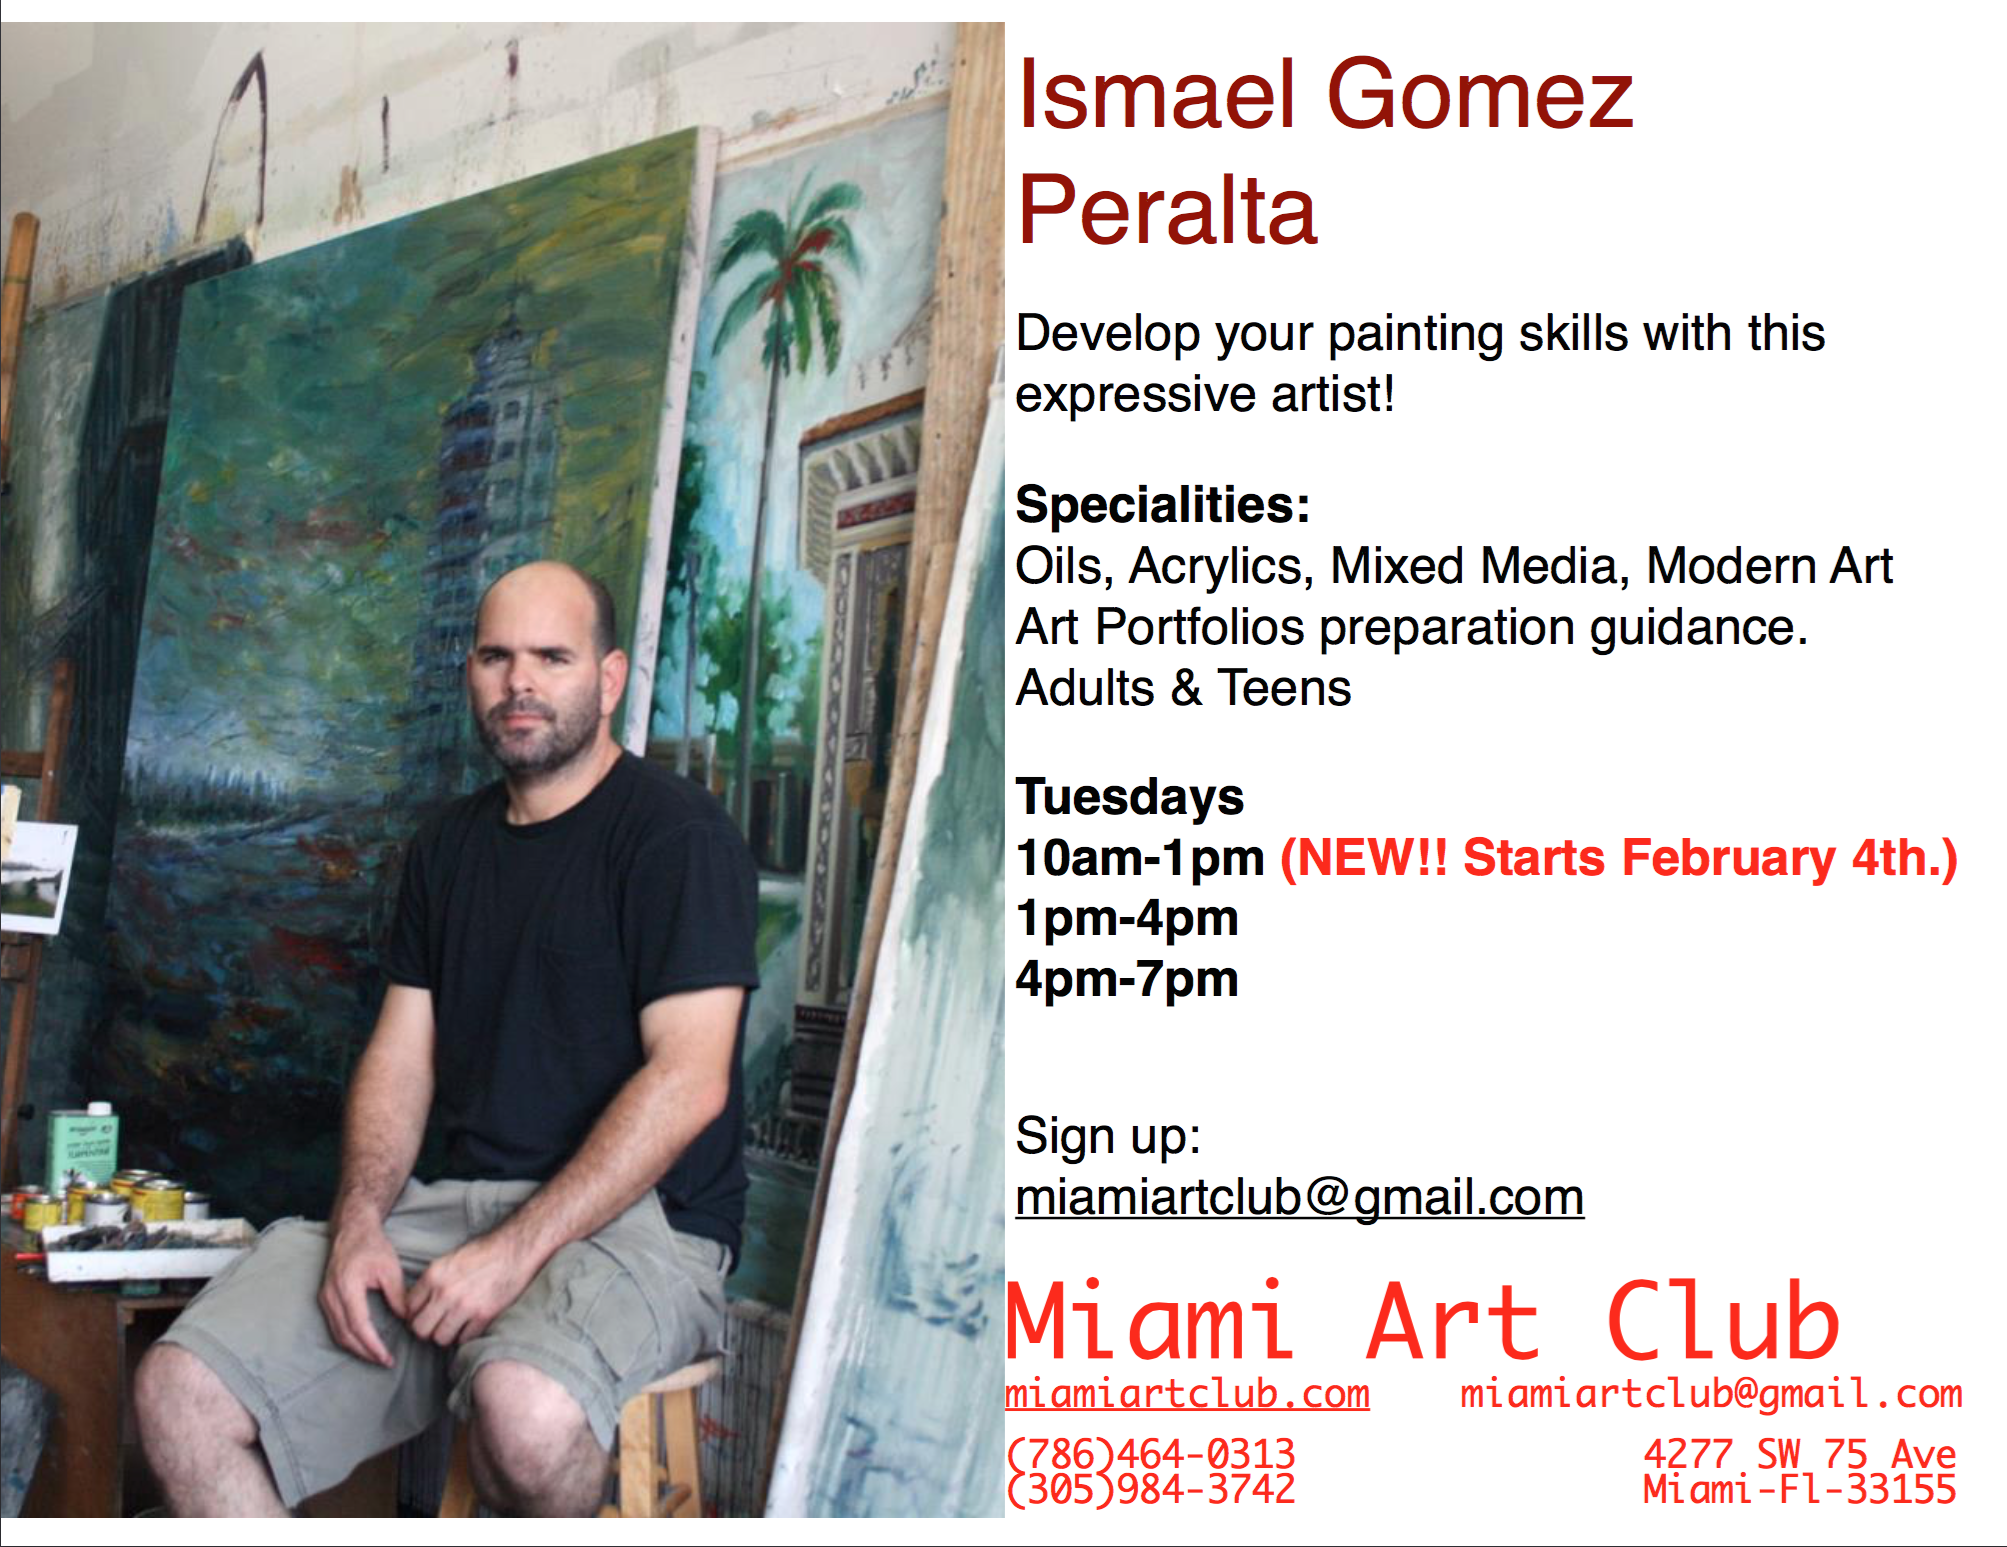 Painting & Drawing Classes with Art Teacher Ismael Gomez Peralta